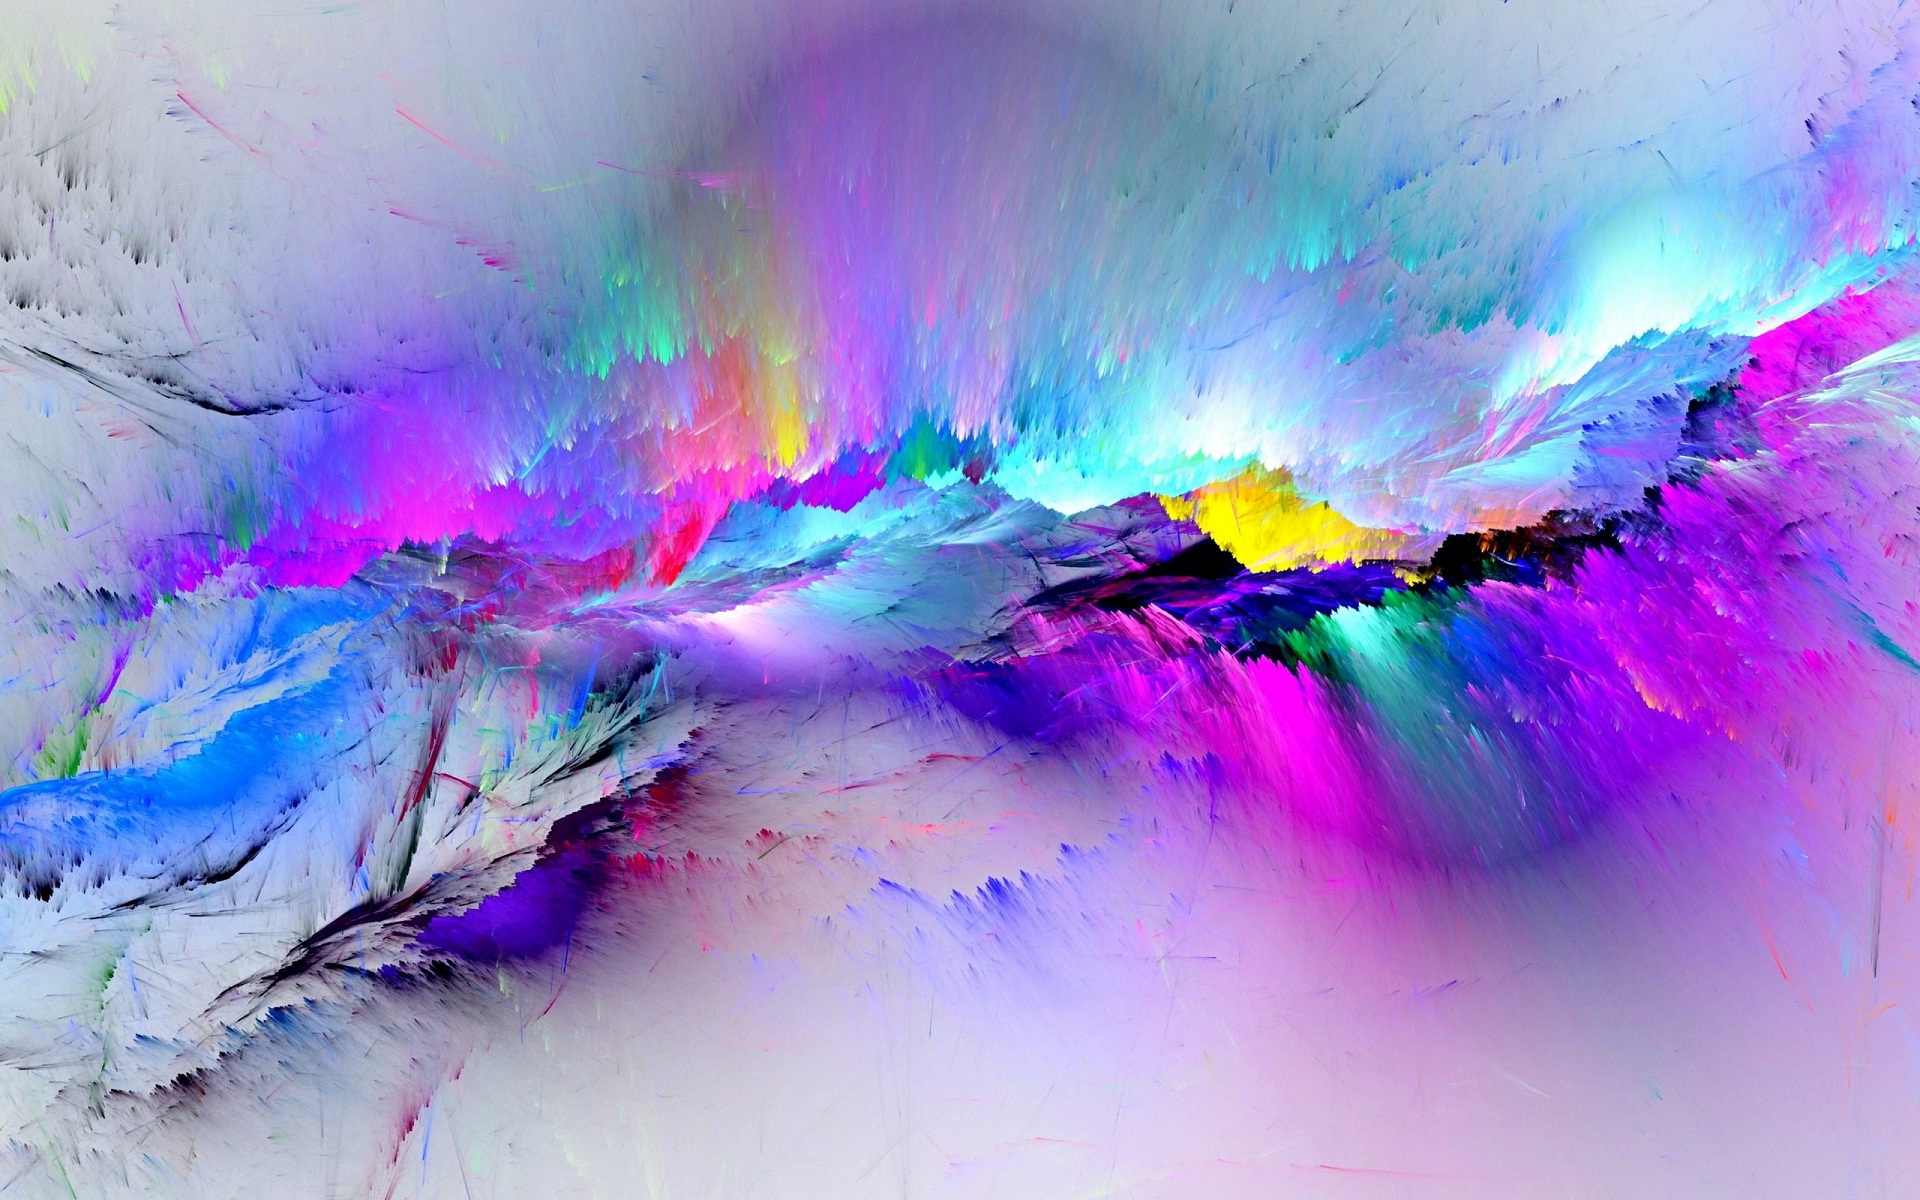 Colorful Wallpapers 39 Wallpapers – Adorable Wallpapers